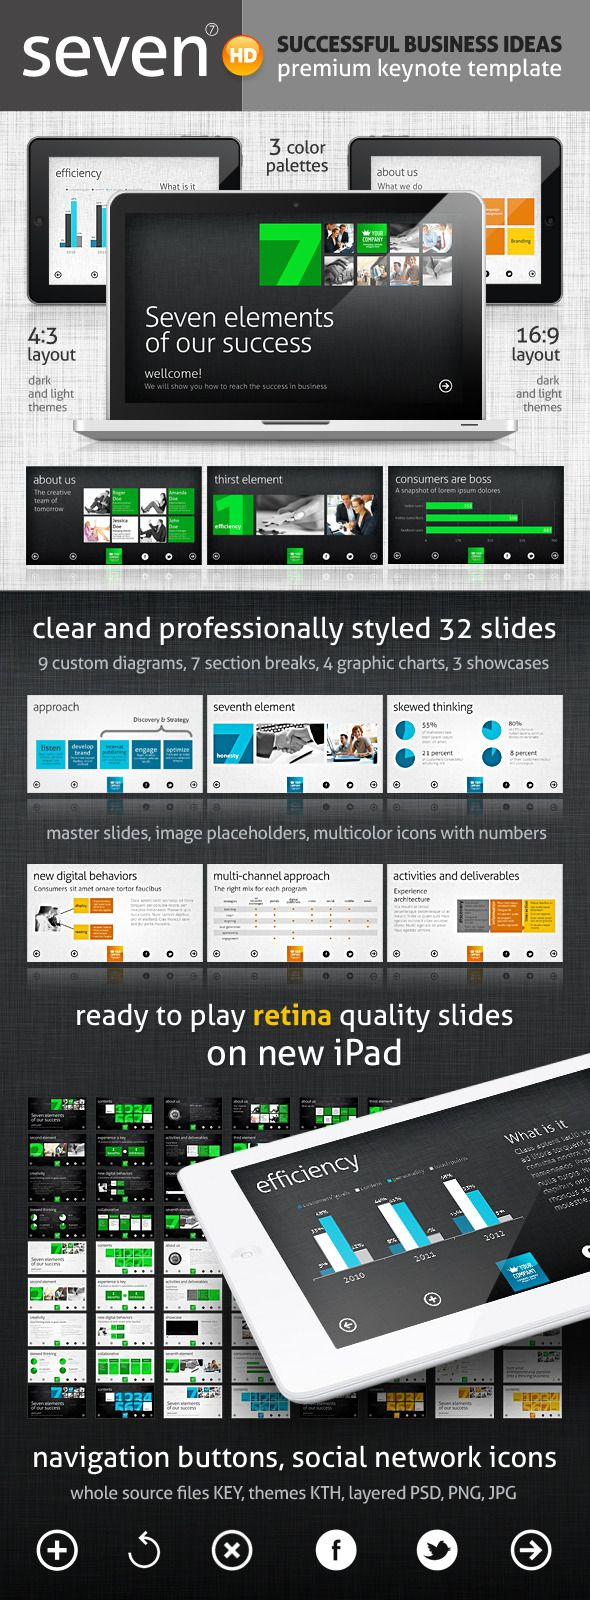 Seven Keynote Template - Keynote Templates Presentation Template. Download here: http://graphicriver.net/item/seven-keynote-template/2155906?s_rank=873&ref=yinkira